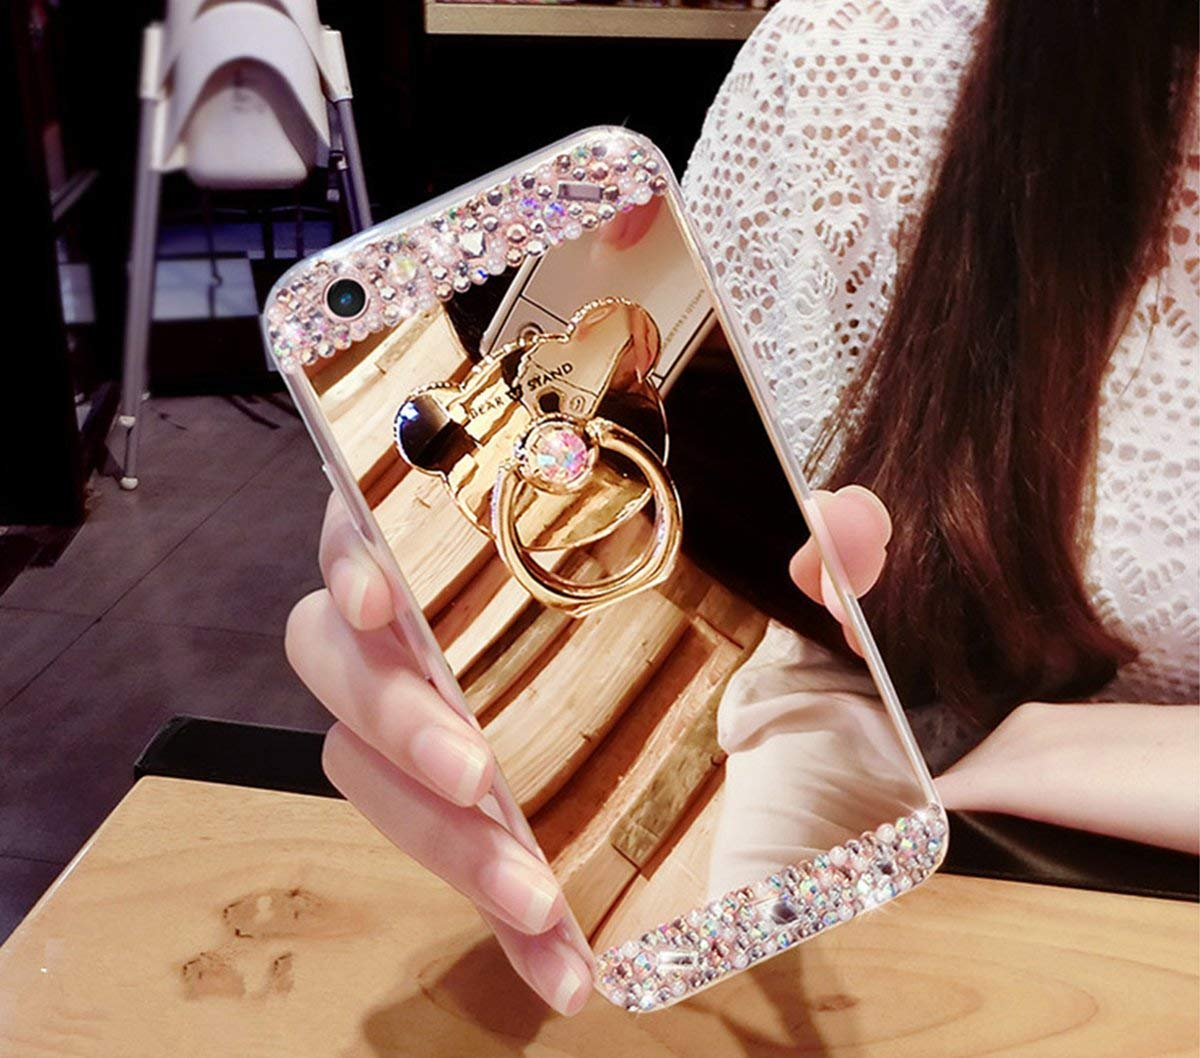 Mirror Makeup Gold Case for iPhone XR,Aoucase Luxury Crystal Rhinestone Glitter Diamond Case with 360 Ring Stand with Black Dual-use Stylus for iPhone XR 6.1 inch